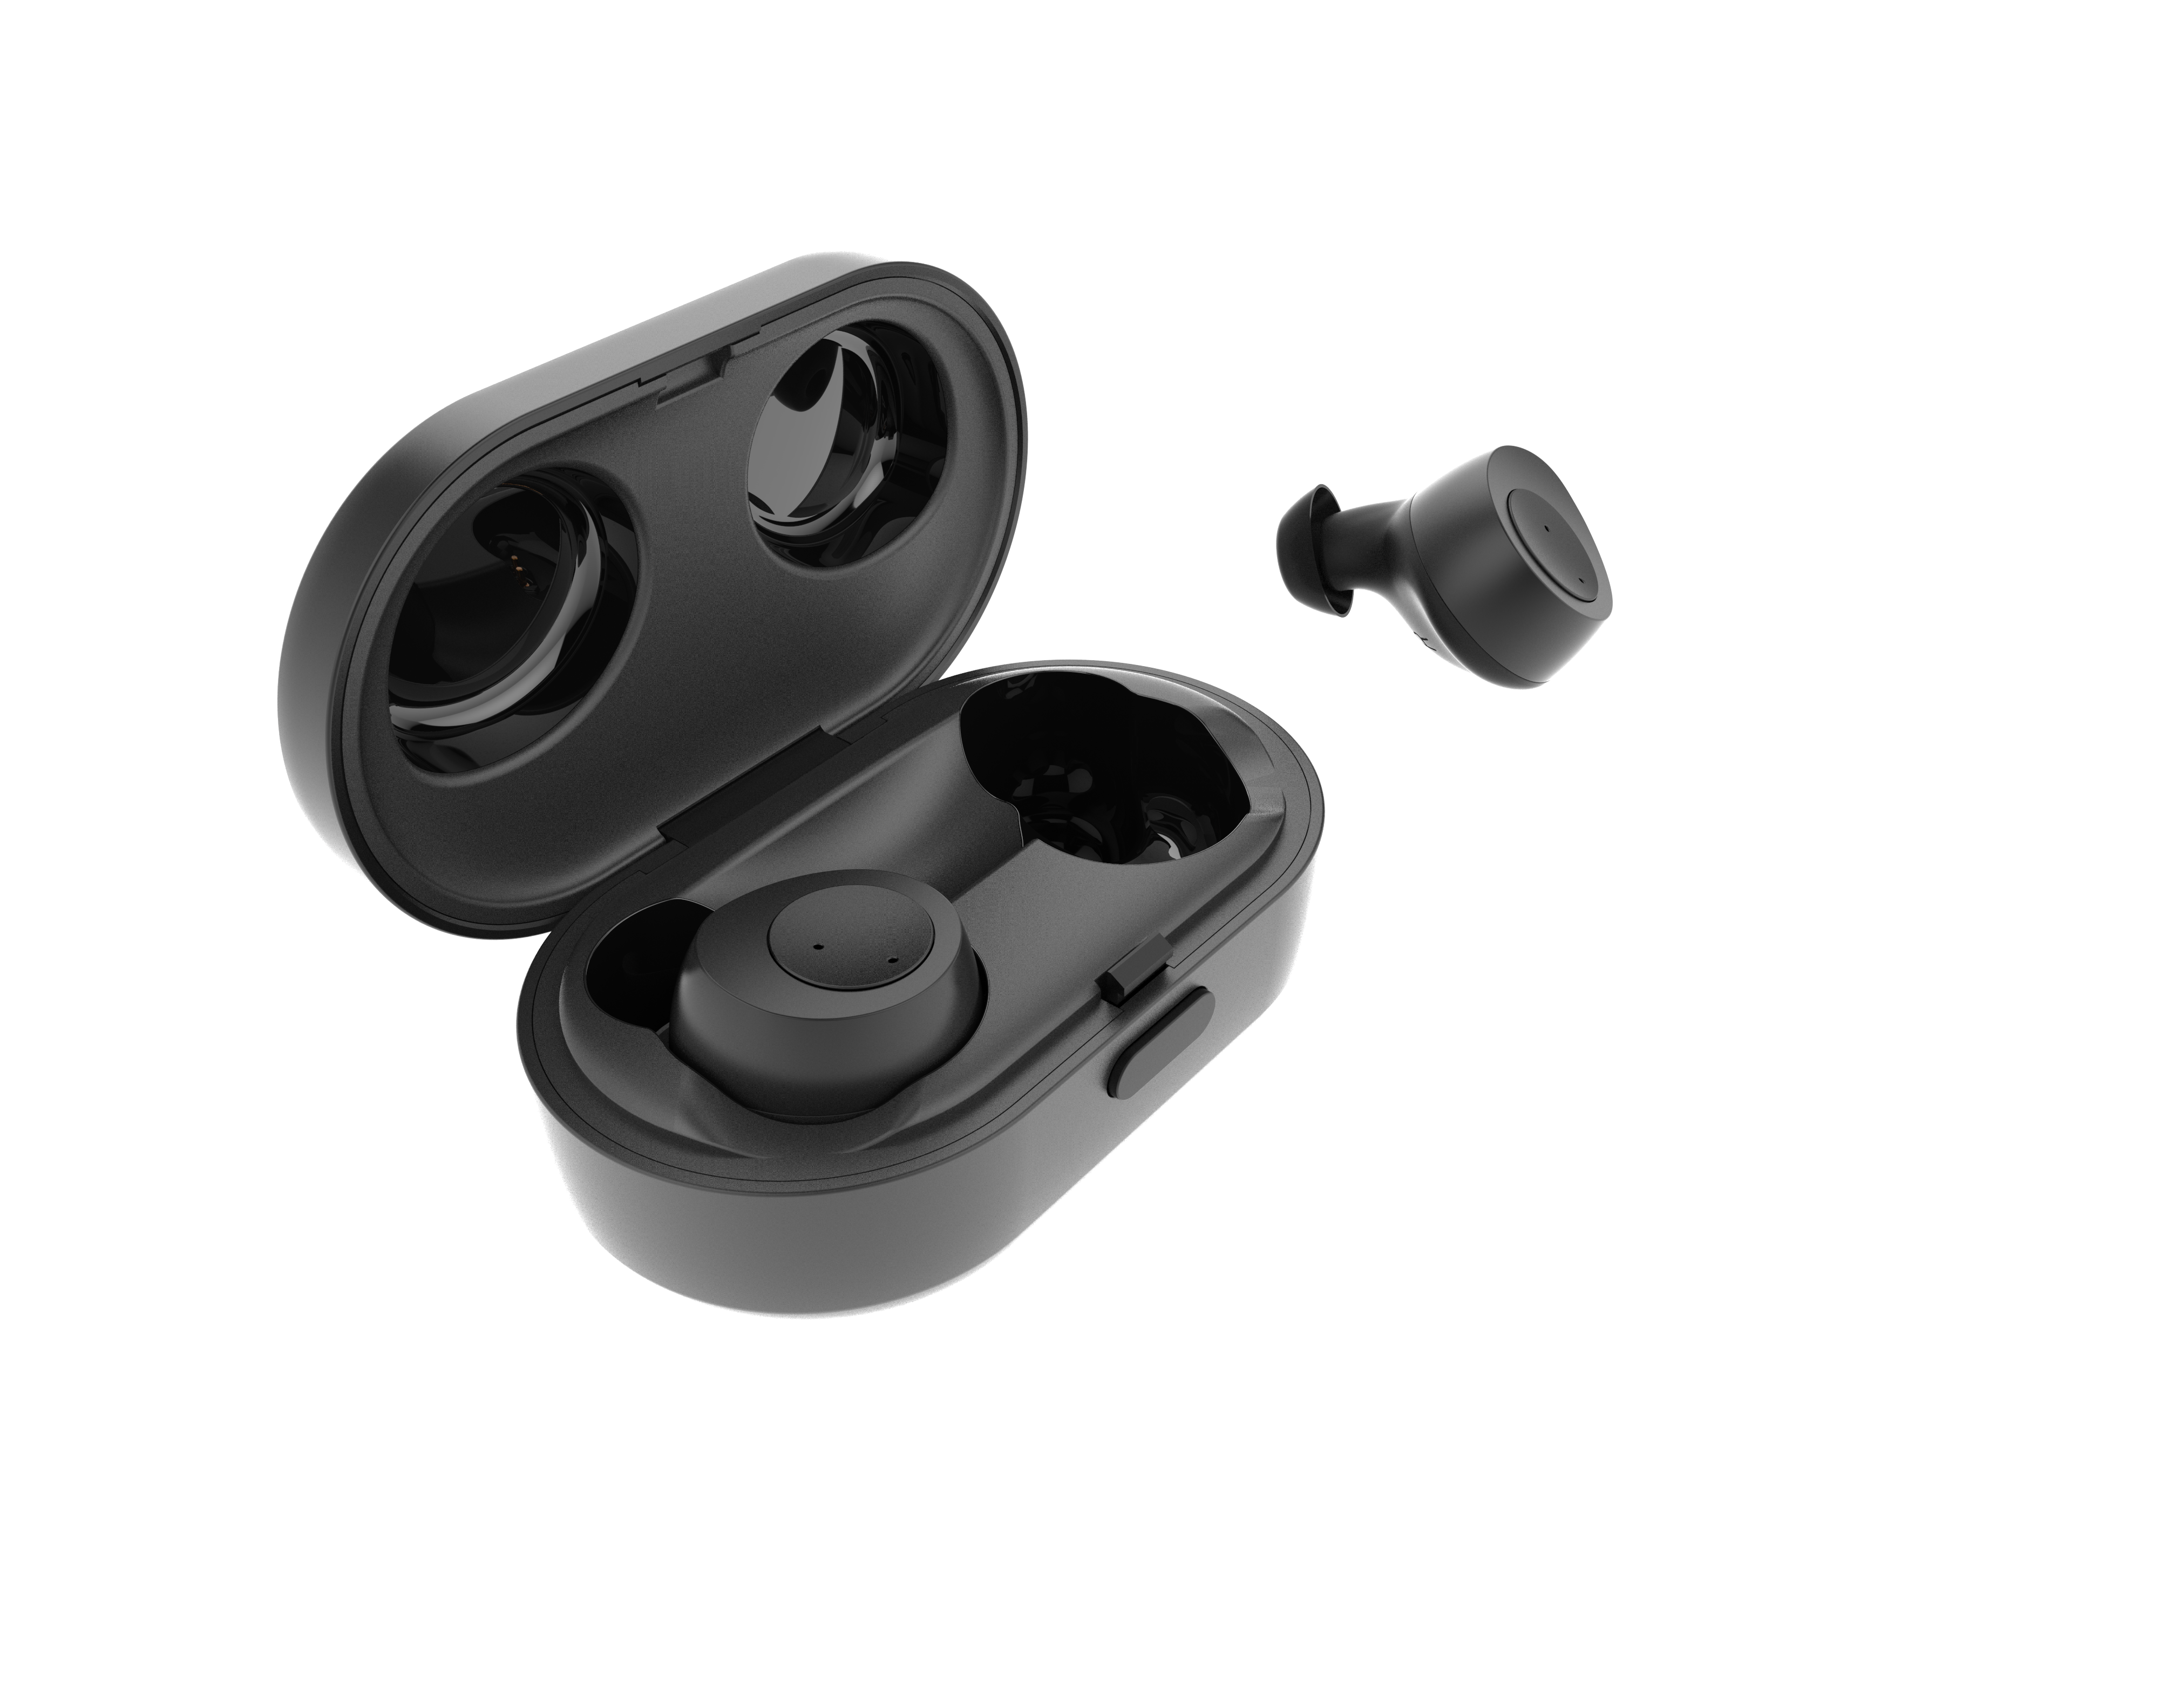 2019 New Cheaper But Good Sound Quality TWS Wireless <strong>Bluetooth</strong> Earphone With Realtek Chipset Very comfortable Sports Earphones